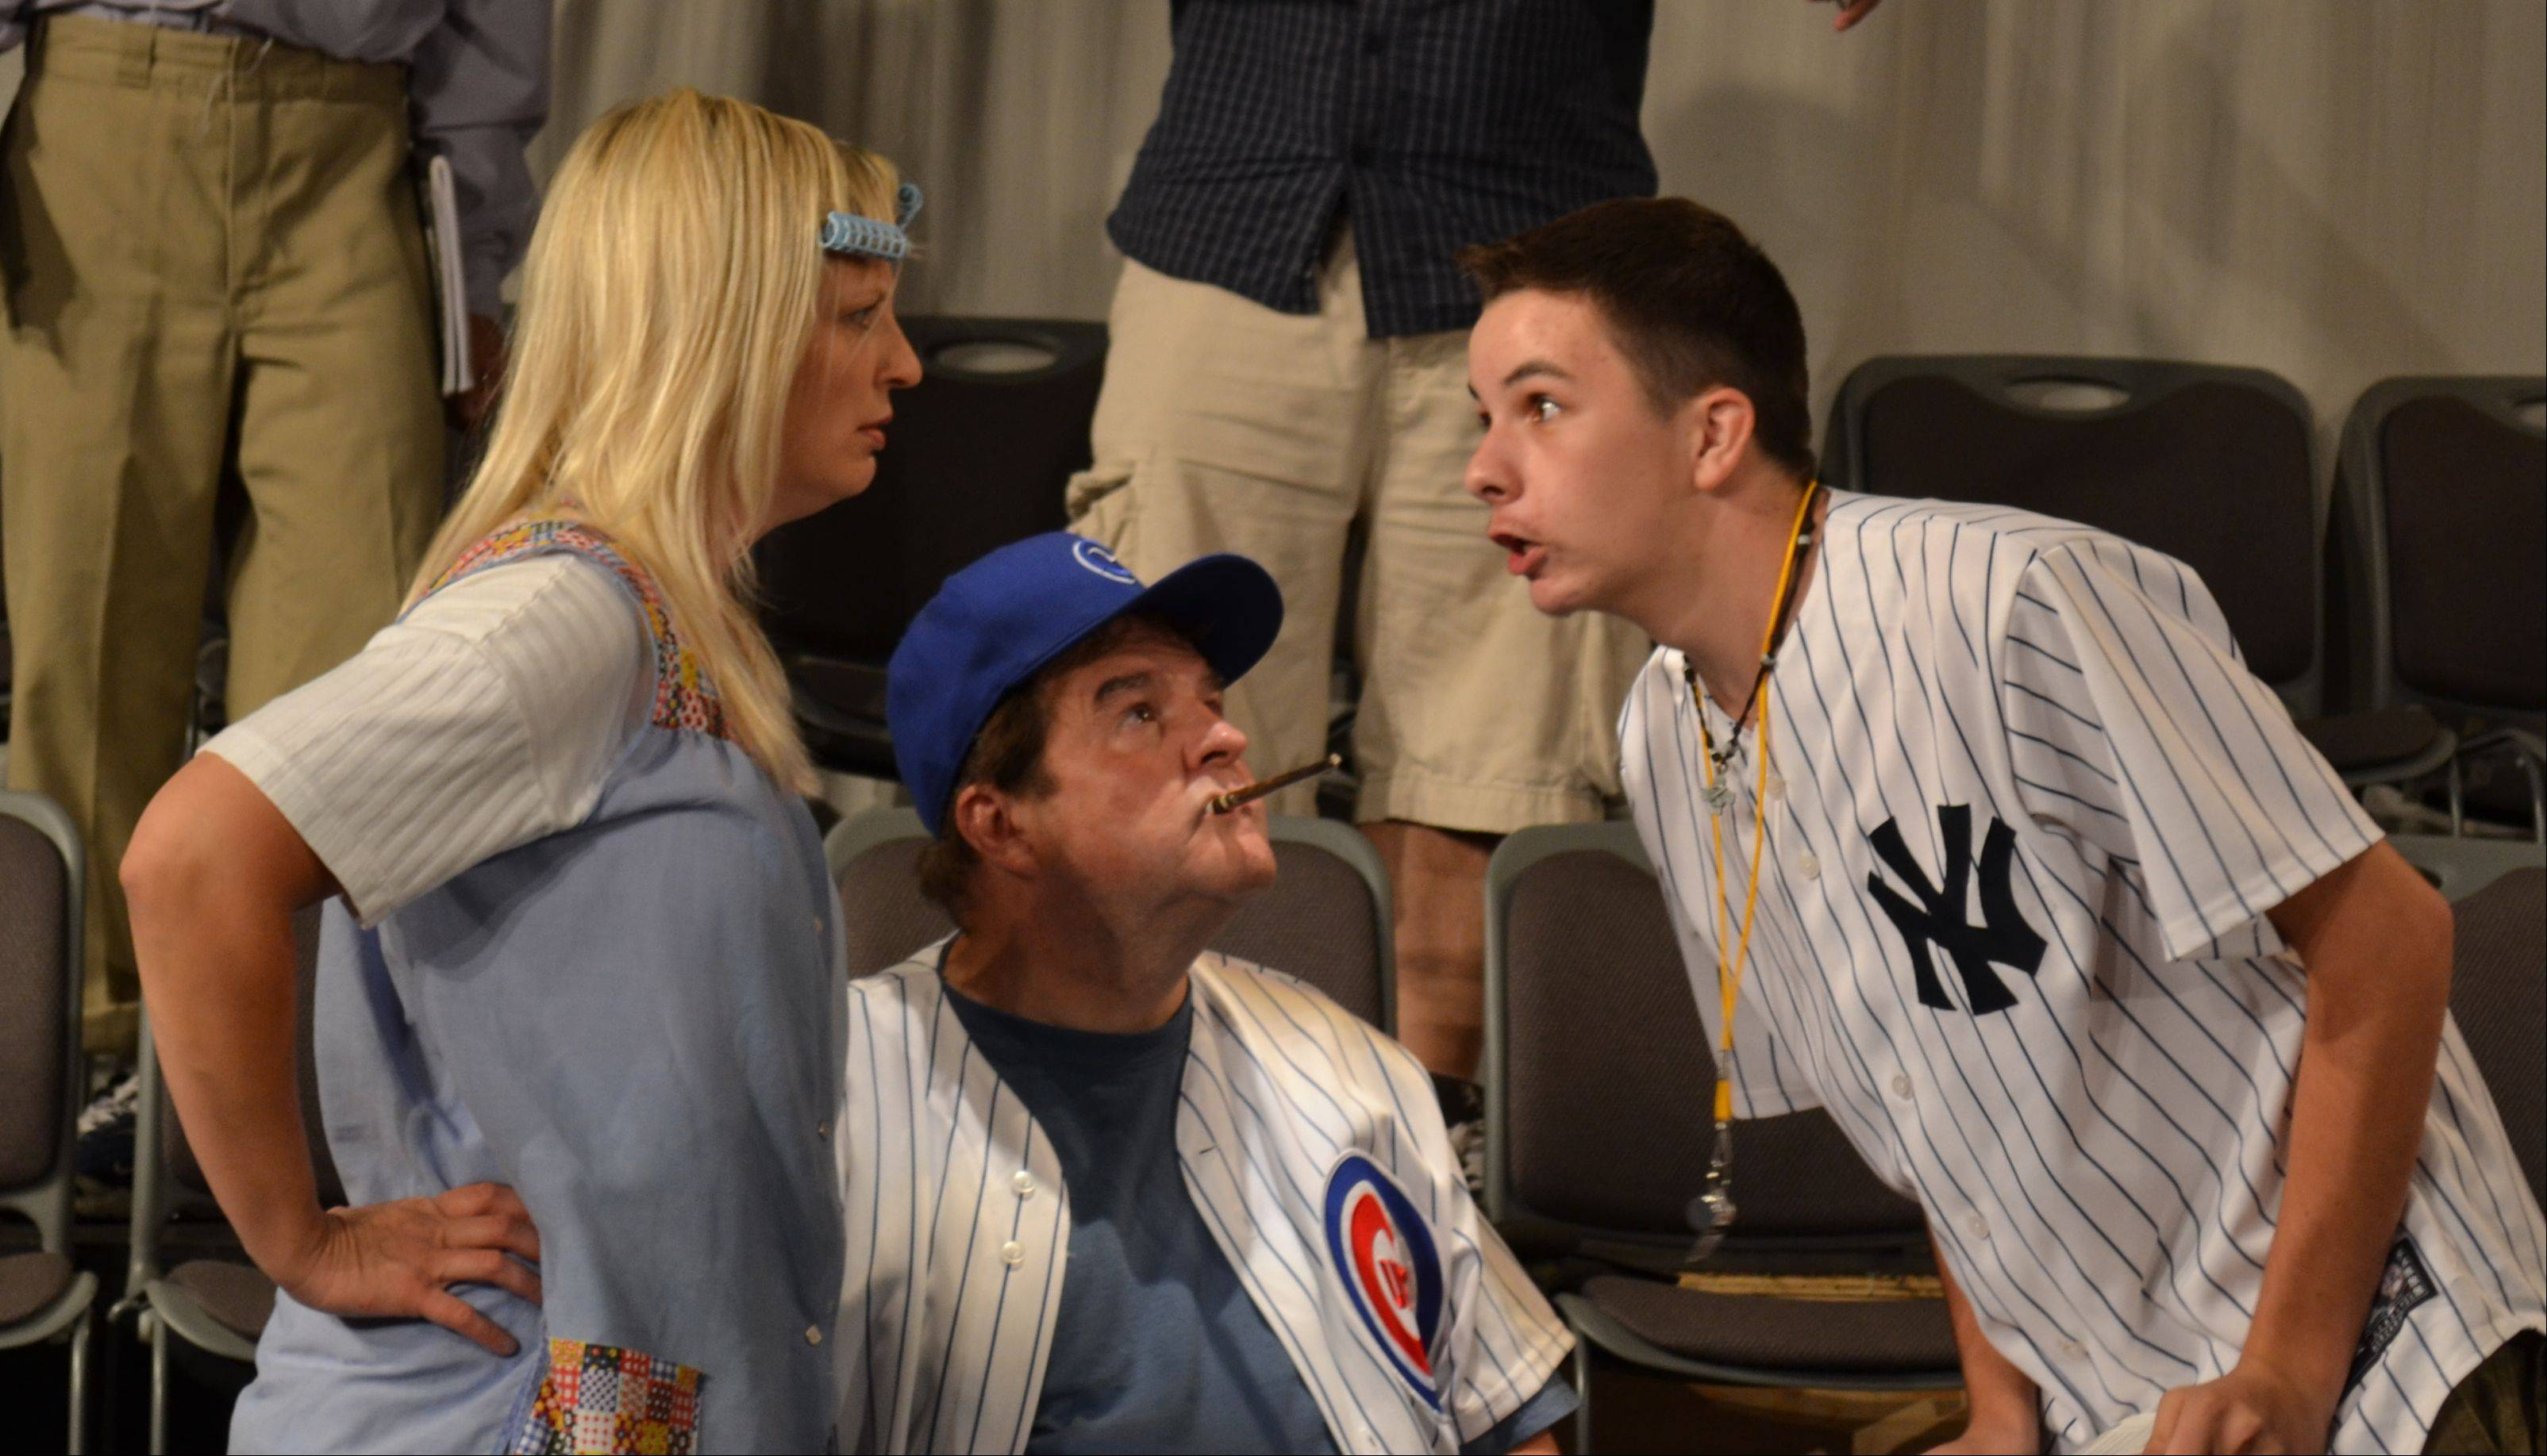 Debbie Dennison, from left, Jerry Wiel and Eric Richter appear in the Elgin Theatre Company production of �Bleacher Bums.� The nine-inning comedy will be presented starting Friday, Sept. 9.